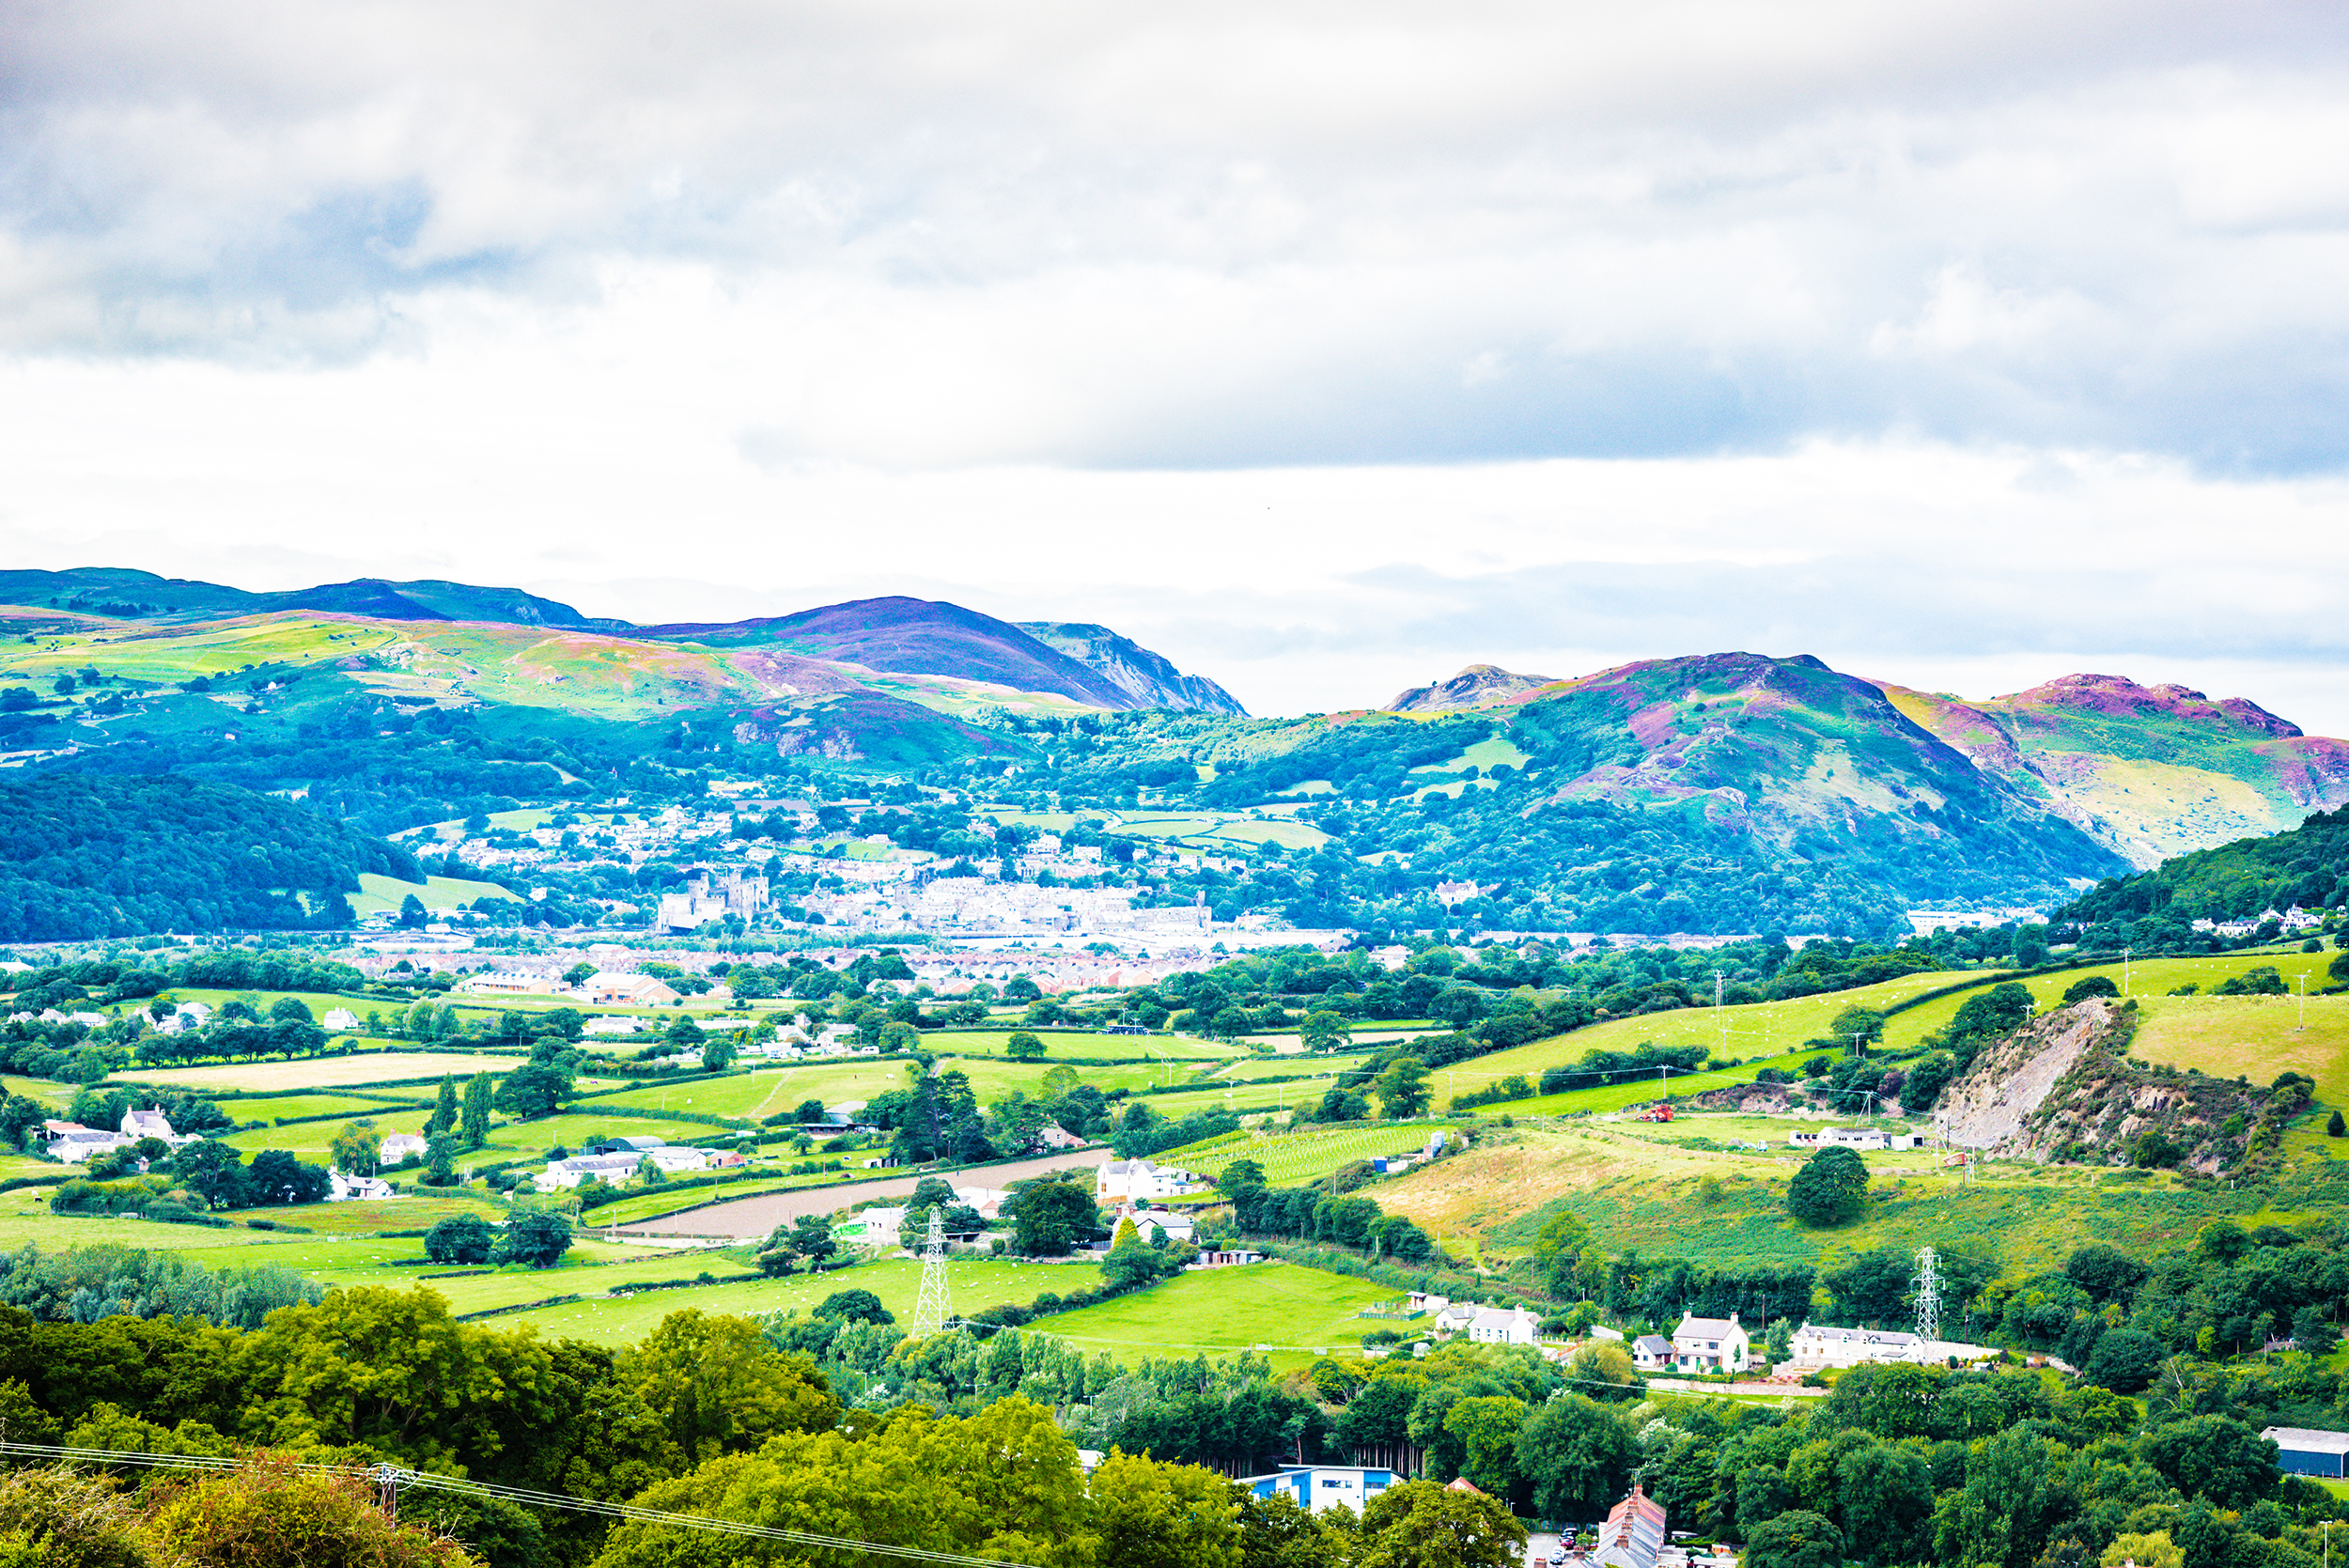 One of the views from Welsh Mountain Zoo